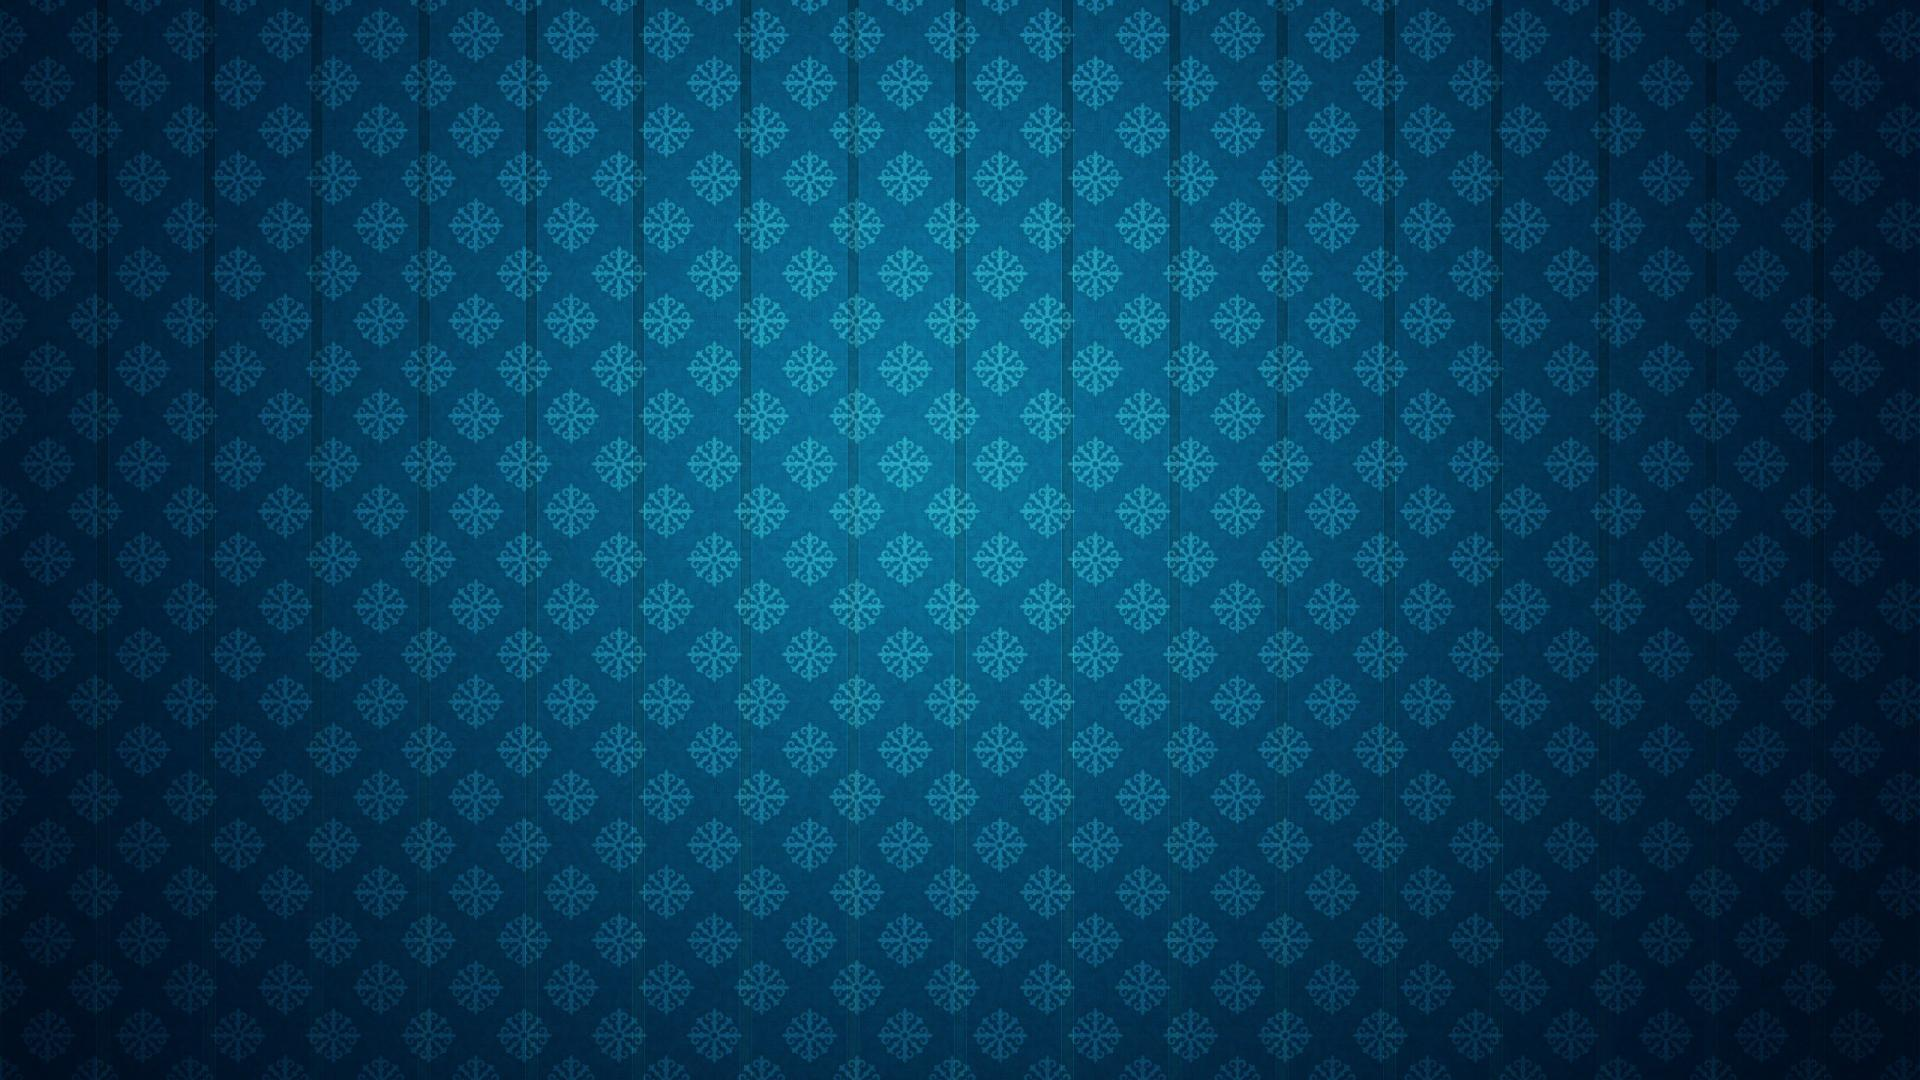 backgrounds beautiful blue design background images abstract 1920x1080